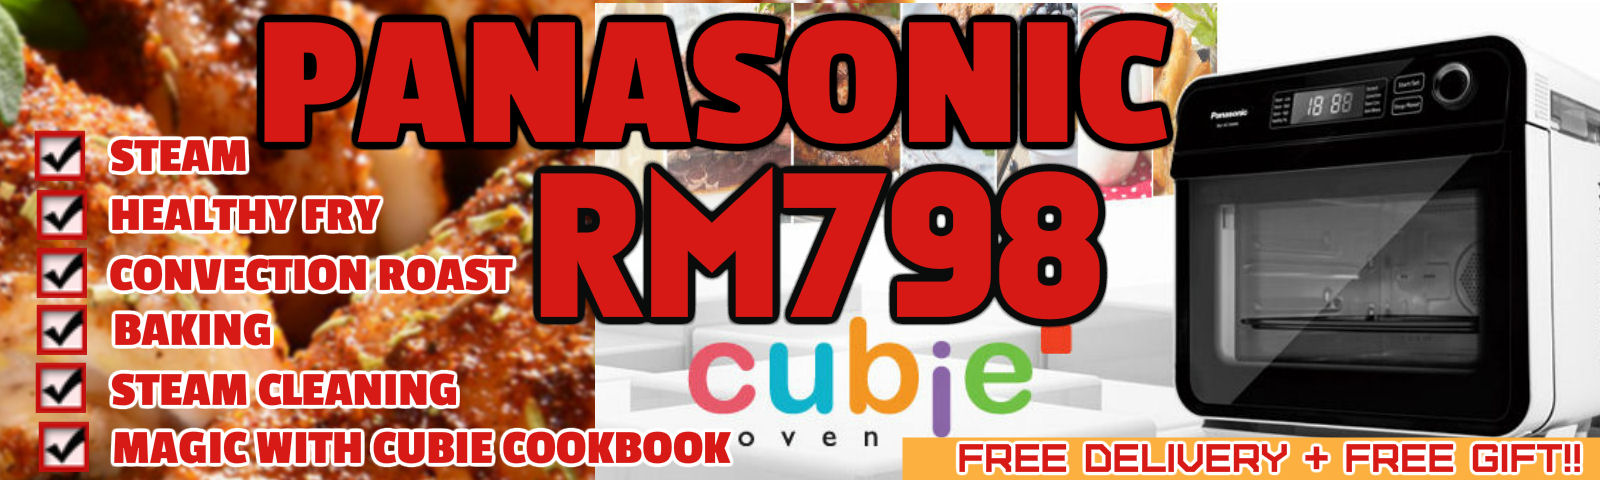 Panasonic Cubie Oven on Offer RM798!!